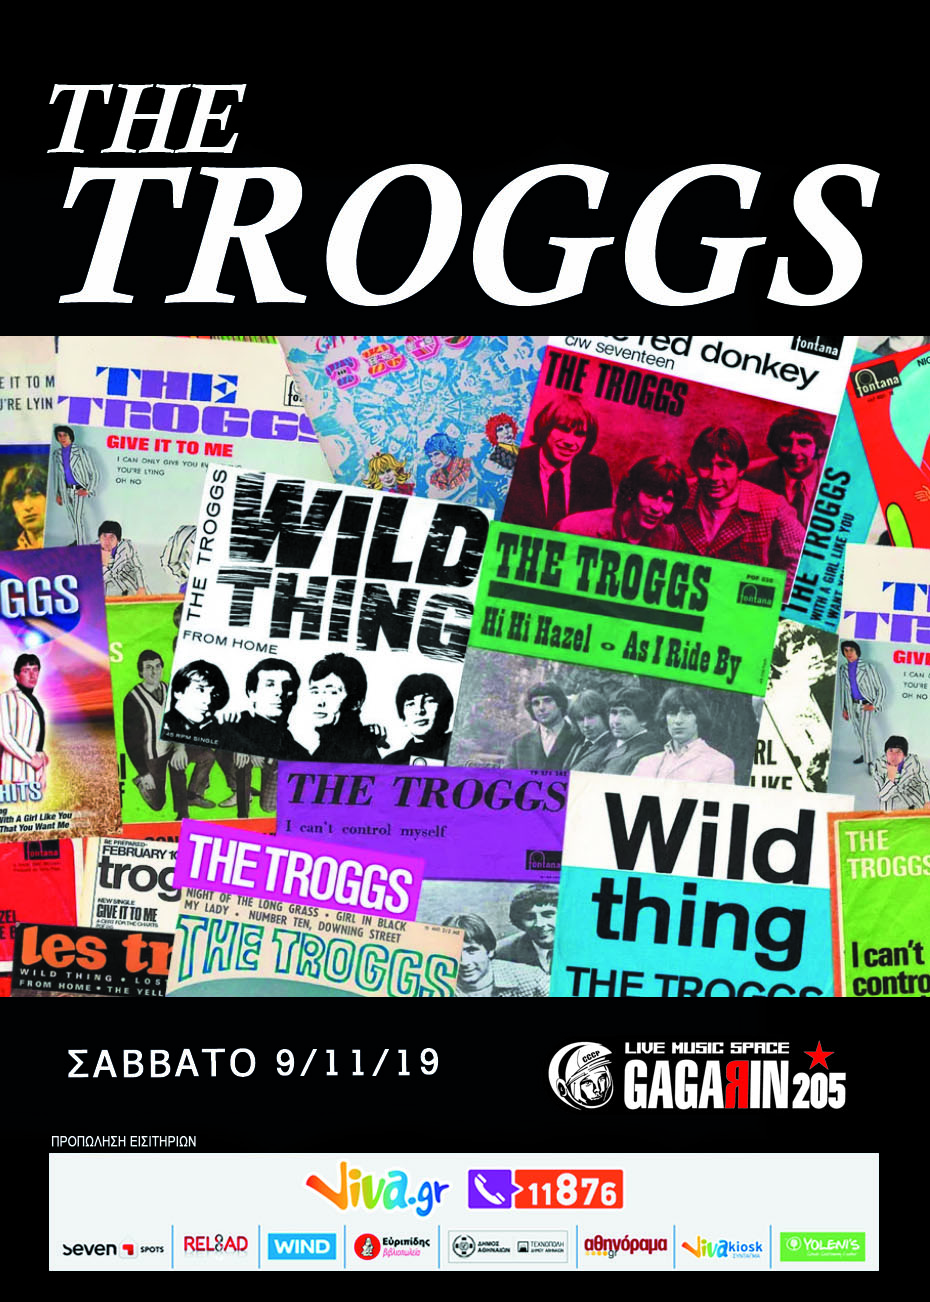 THE TROGGS POSTER